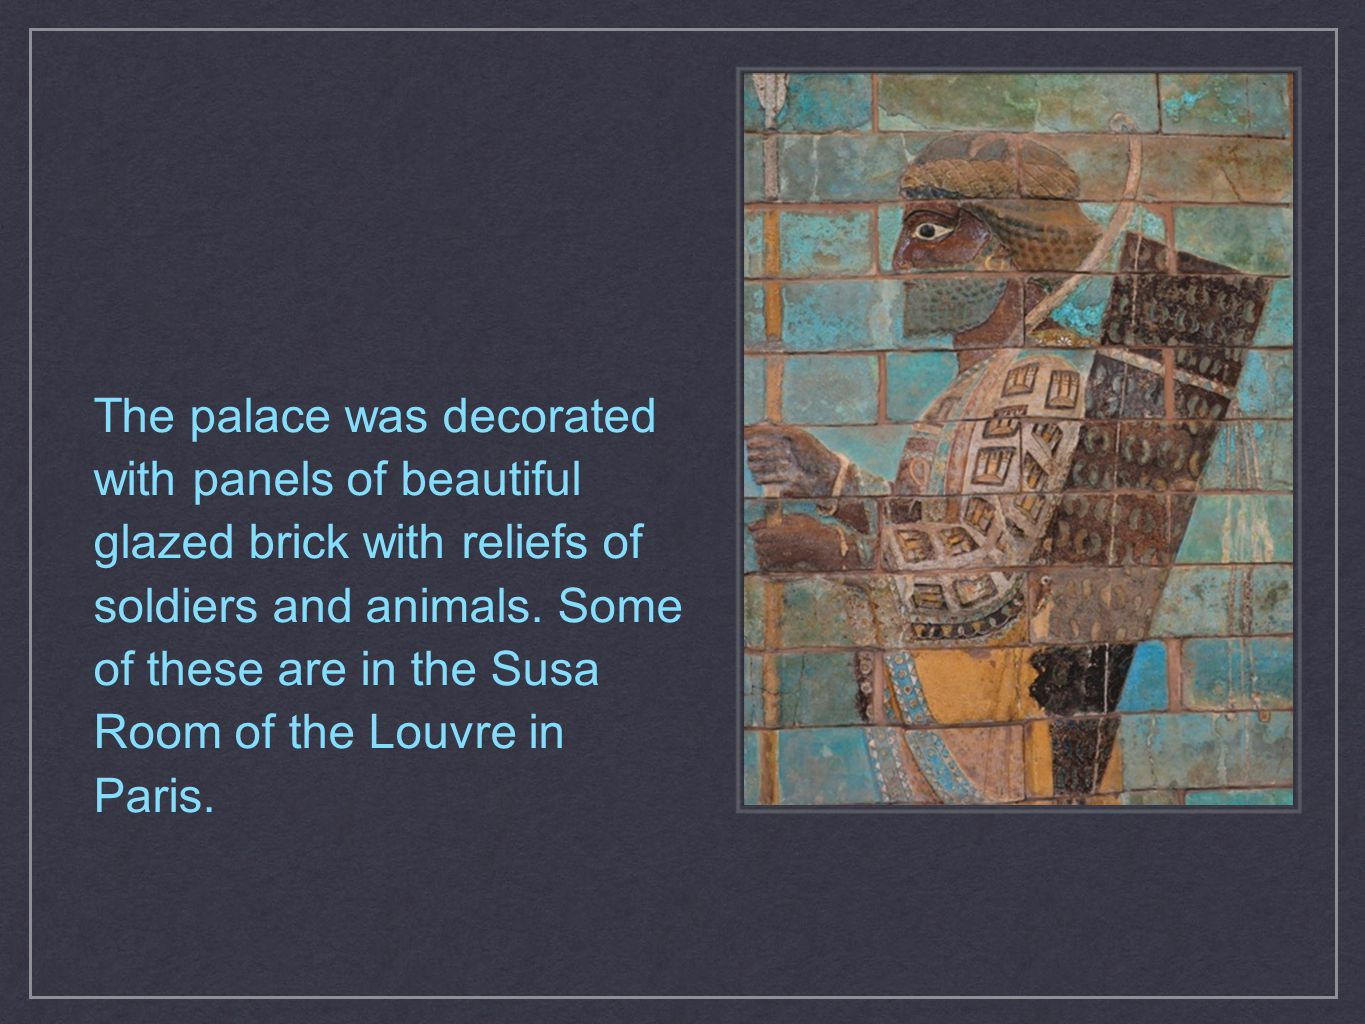 The palace was decorated with panels of beautiful glazed brick with reliefs of soldiers and animals. Some of these are in the Susa Room of the Louvre